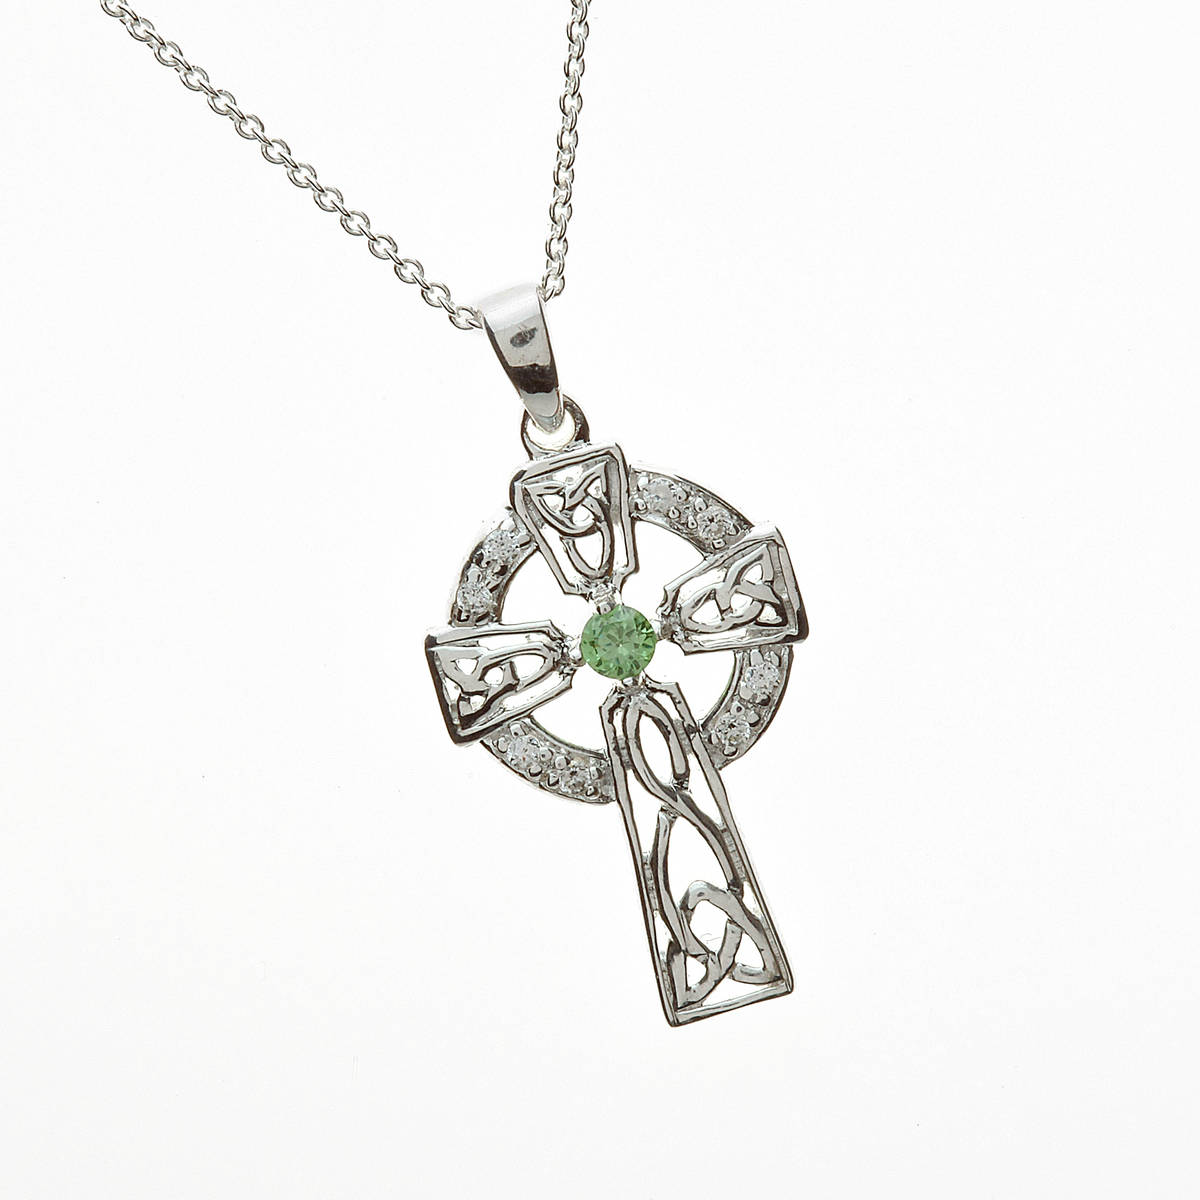 "Silver Cz Cross With Green Cz Centre 18"" Trace"